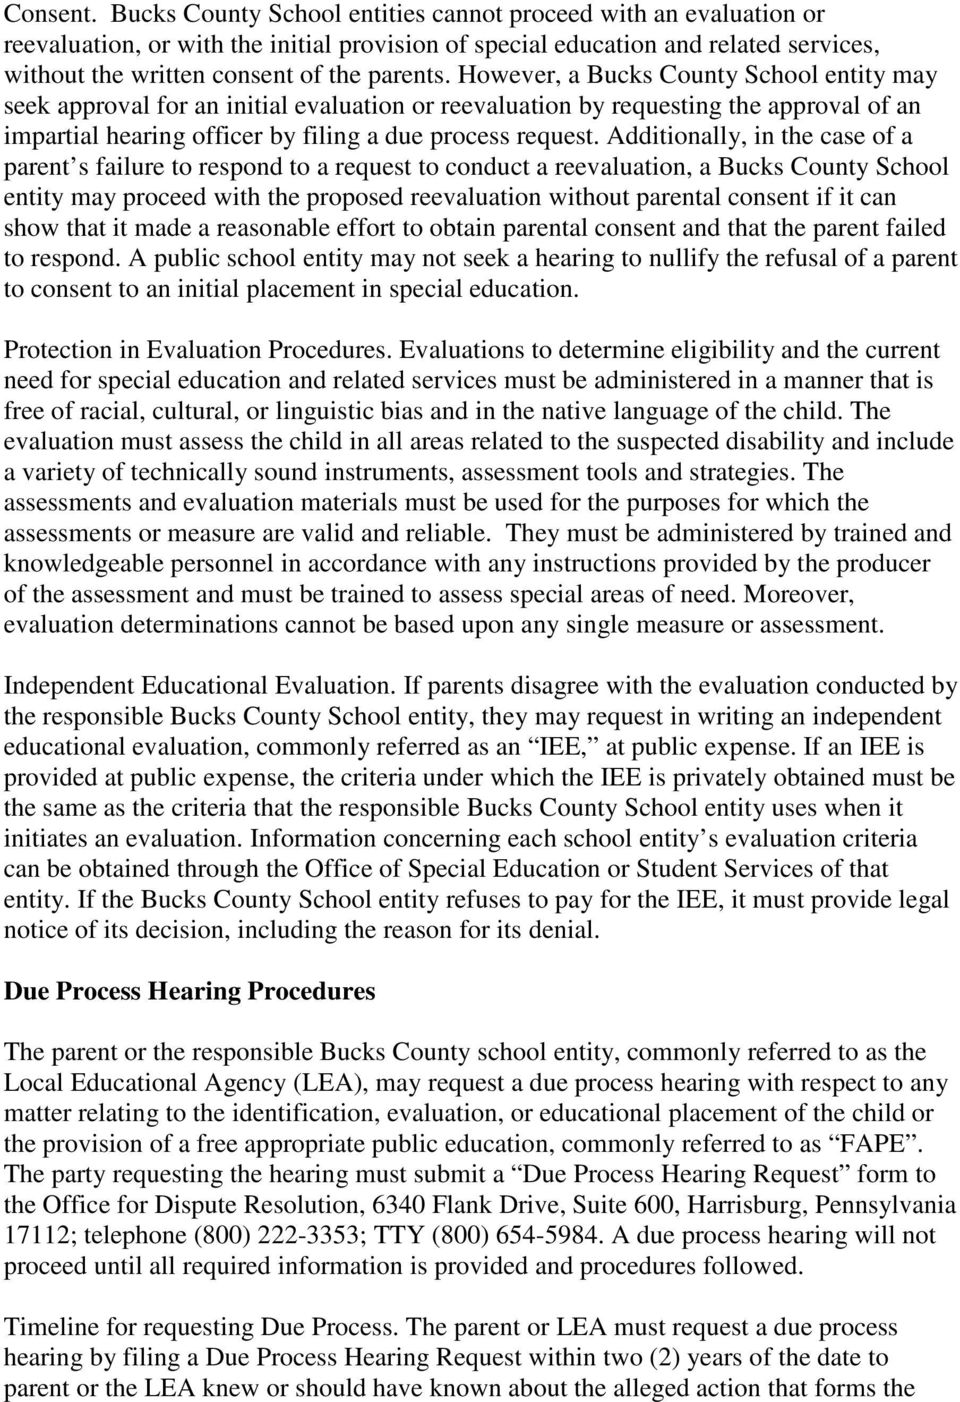 However, a Bucks County School entity may seek approval for an initial evaluation or reevaluation by requesting the approval of an impartial hearing officer by filing a due process request.